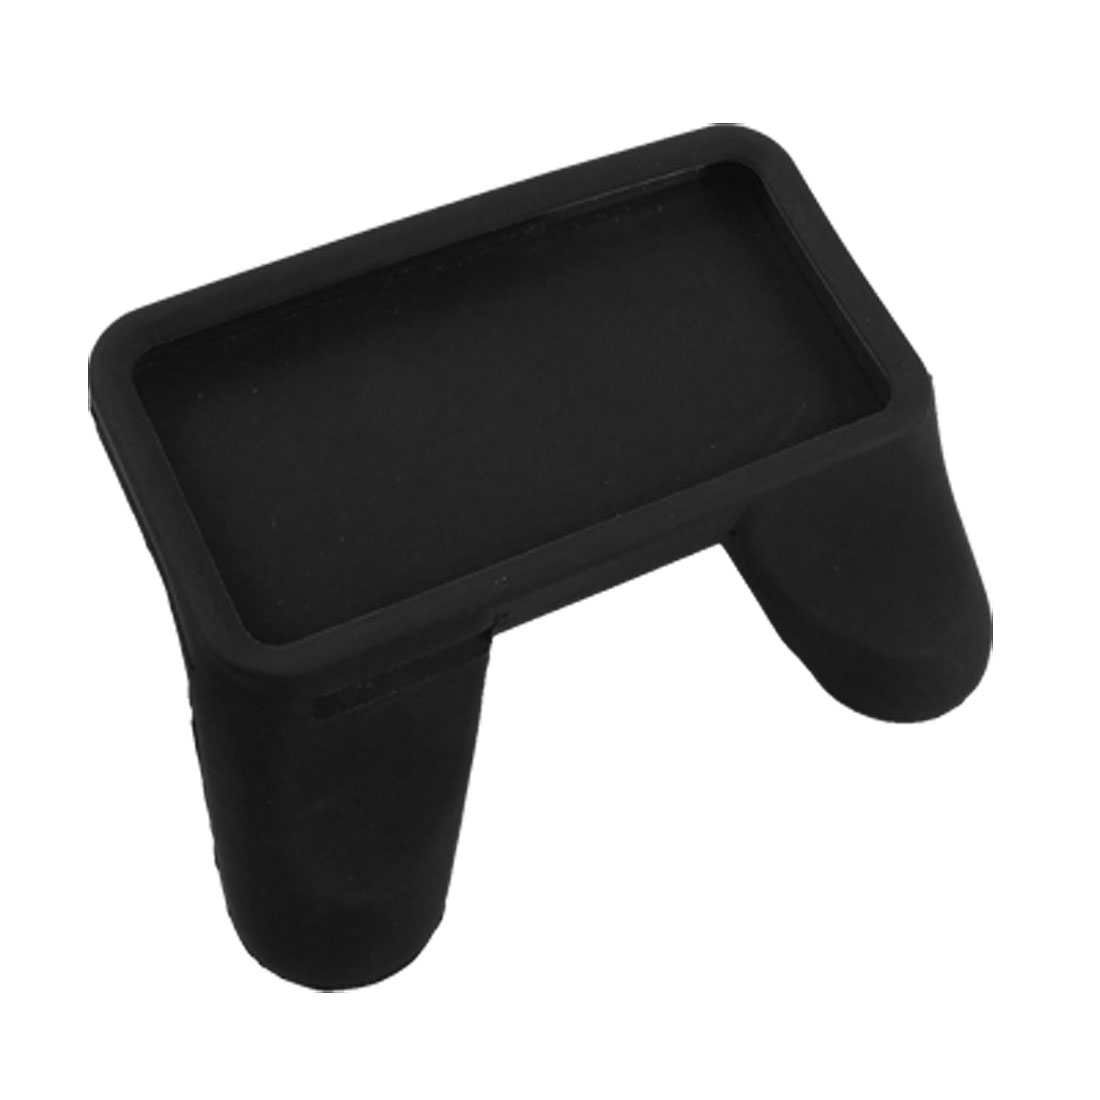 Black Soft Silicone Game Control Handle Grip Case for iPhone 4 4G